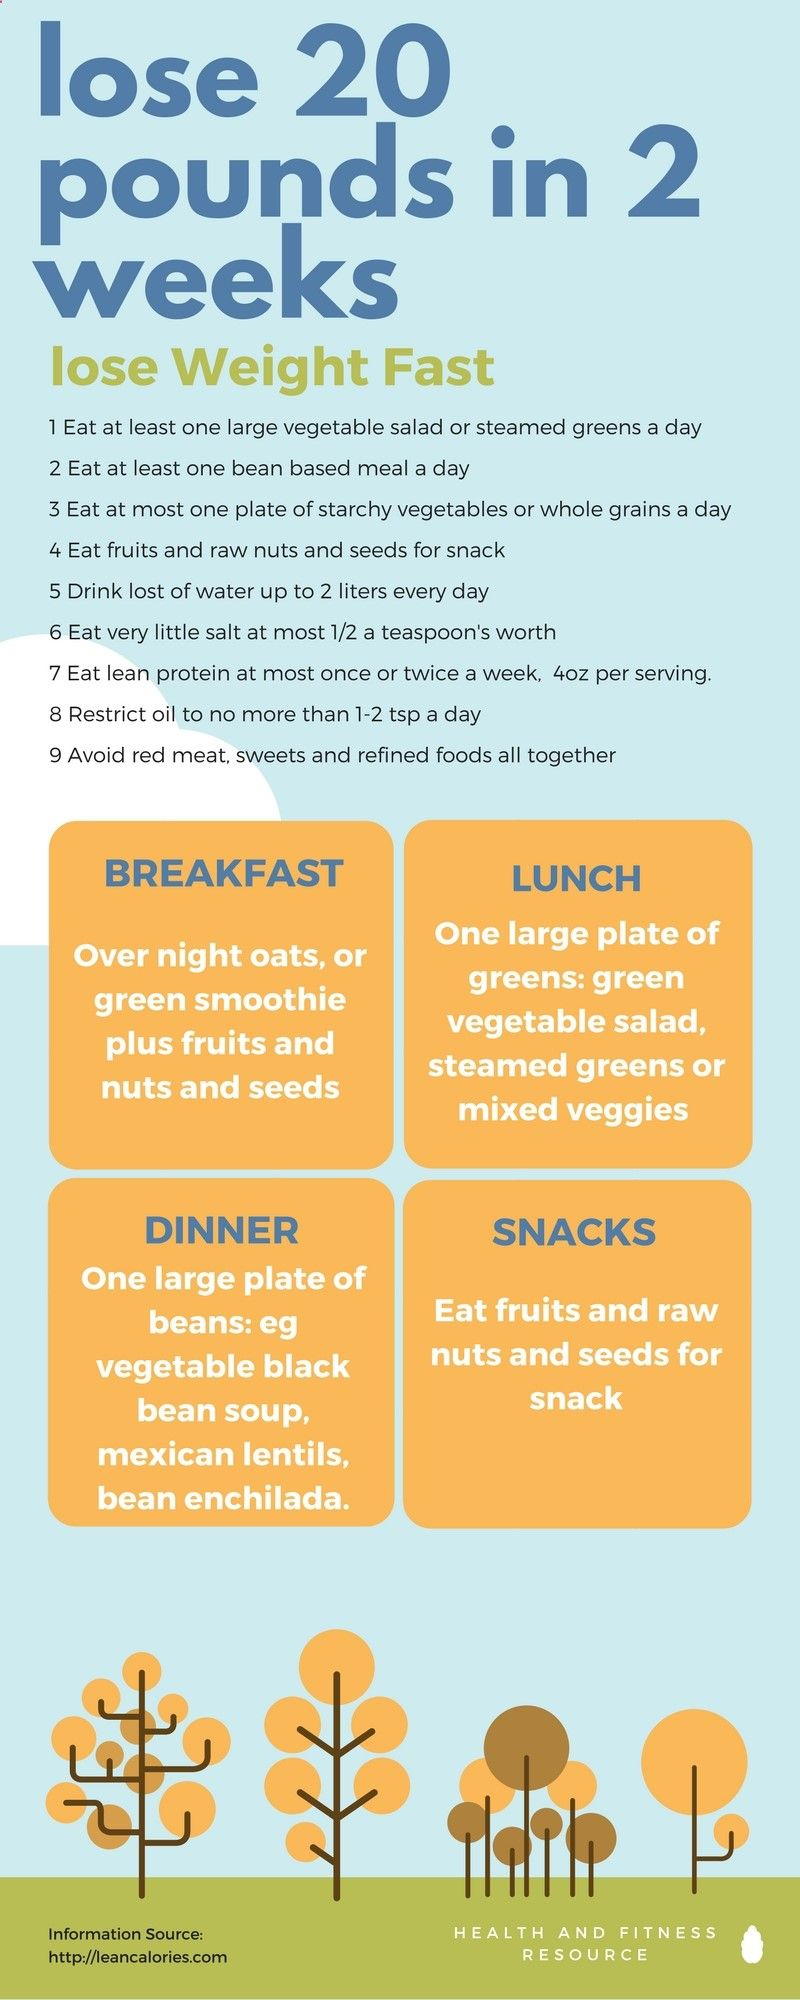 How to lose 20 pounds in 2 weeks using a nutritional guide used by Americas  top family doctor to slim down obese patients and reverse diabetes and  heart ...